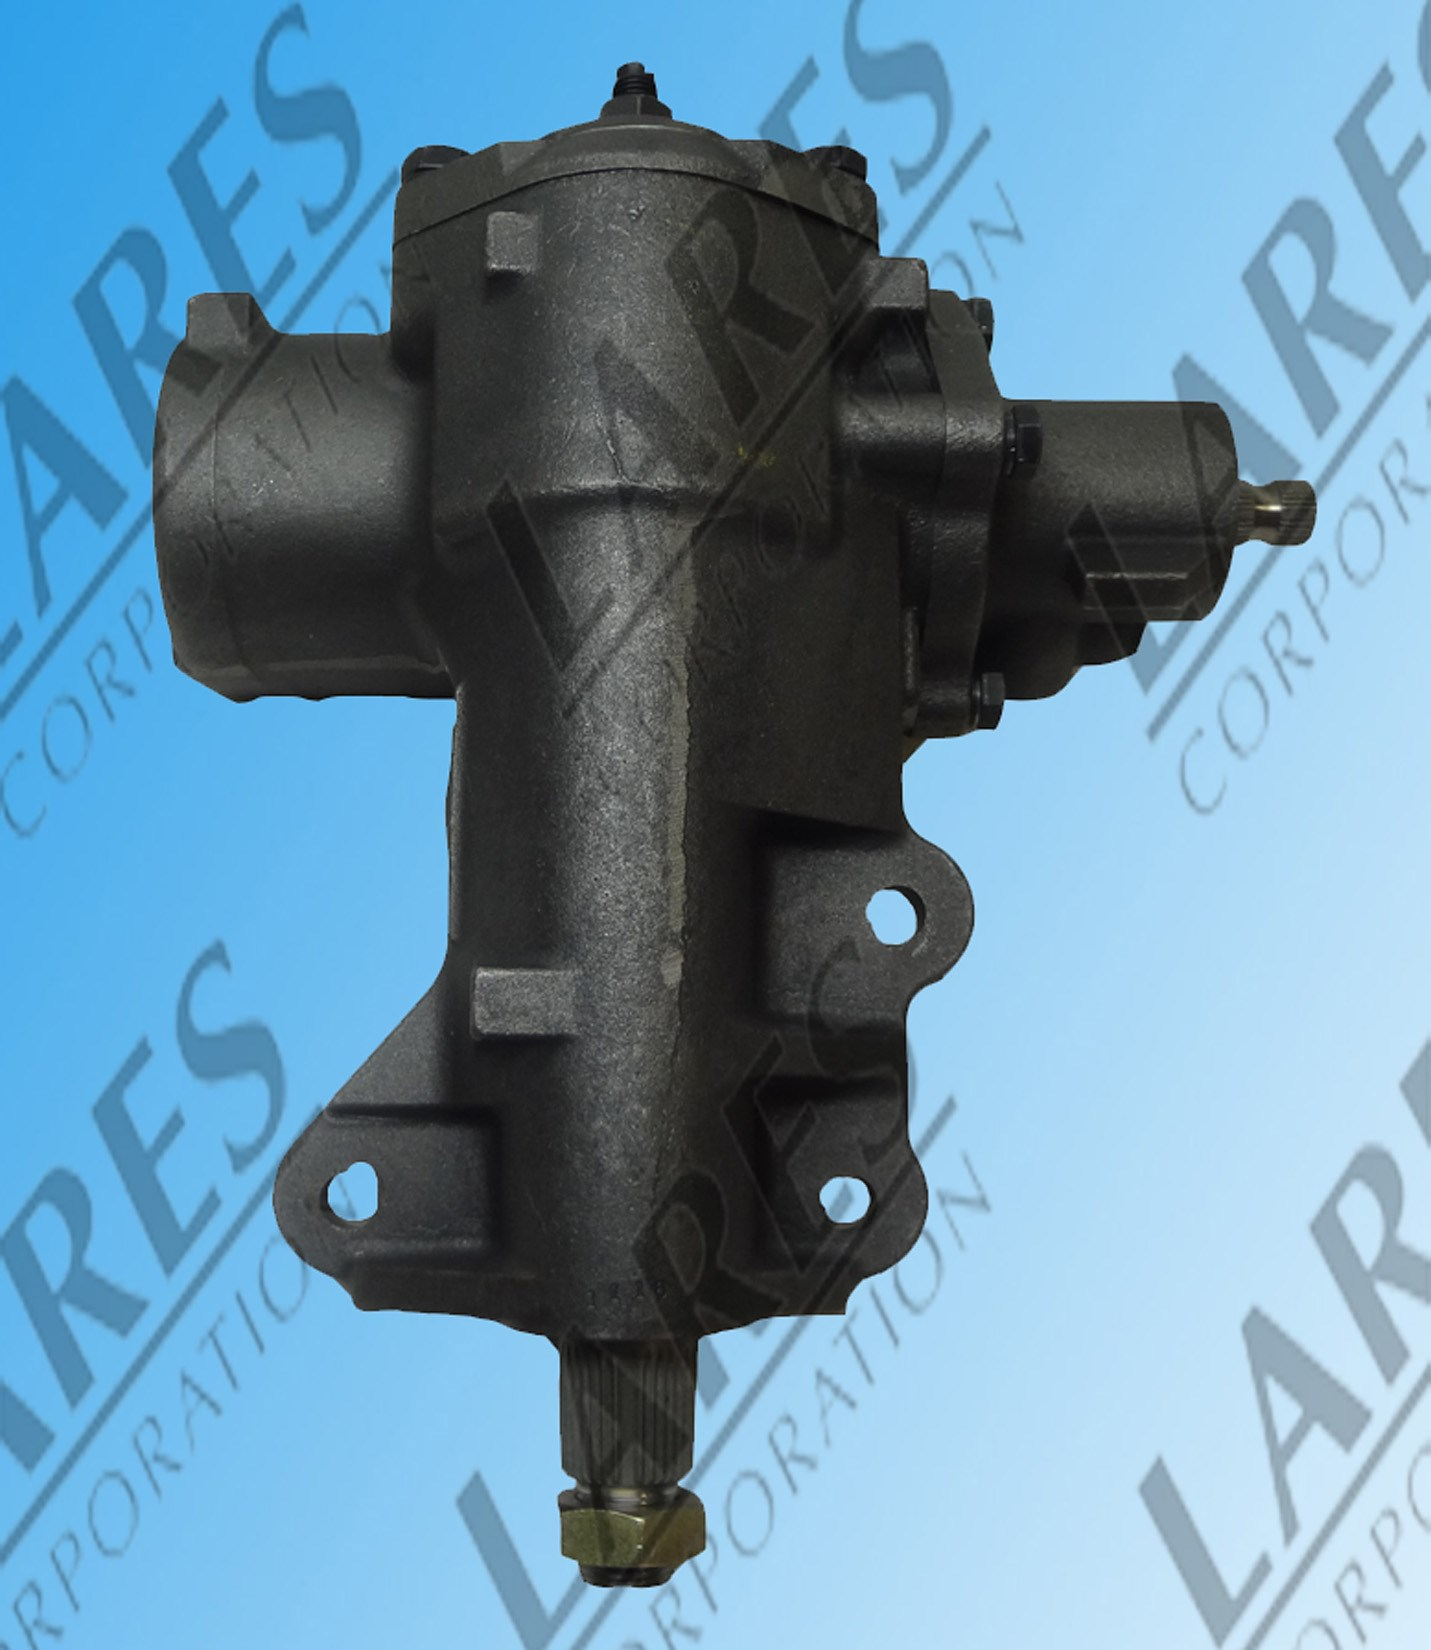 Power Steering Gear, Part No. 11088-a